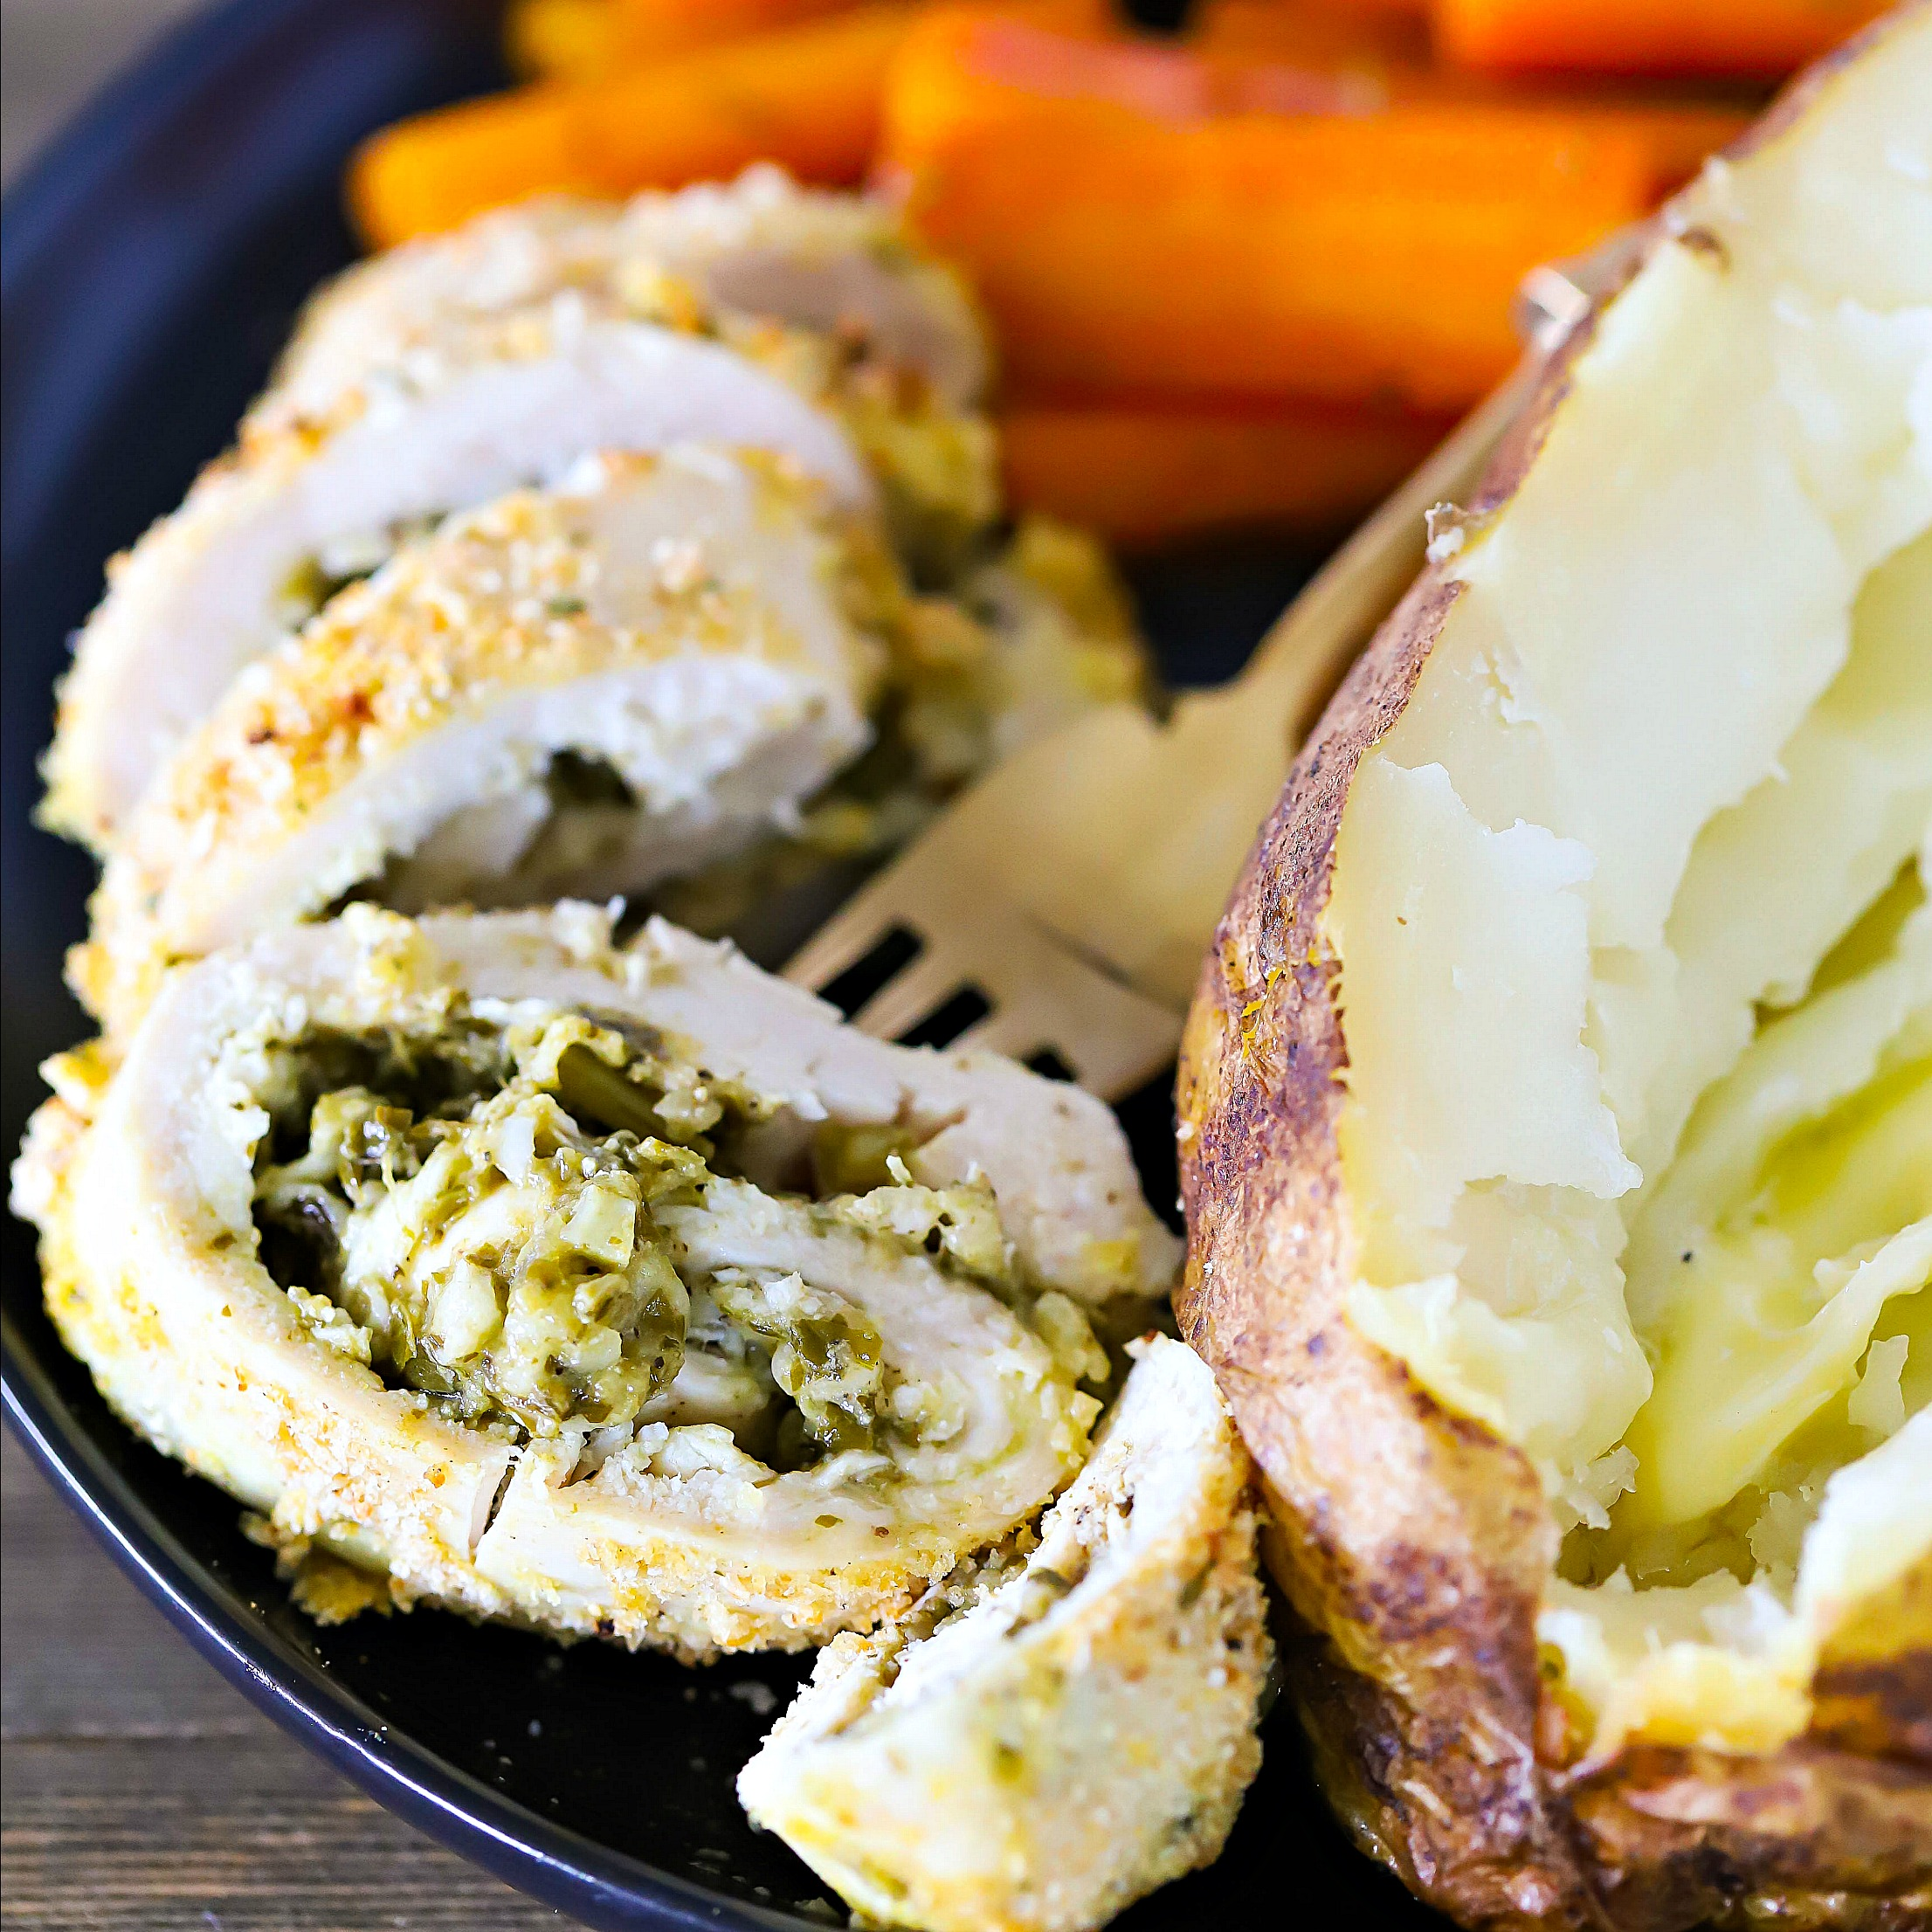 Sliced Pesto Stuffed Chicken on a black plate with a side of carrots and baked potato and a fork.